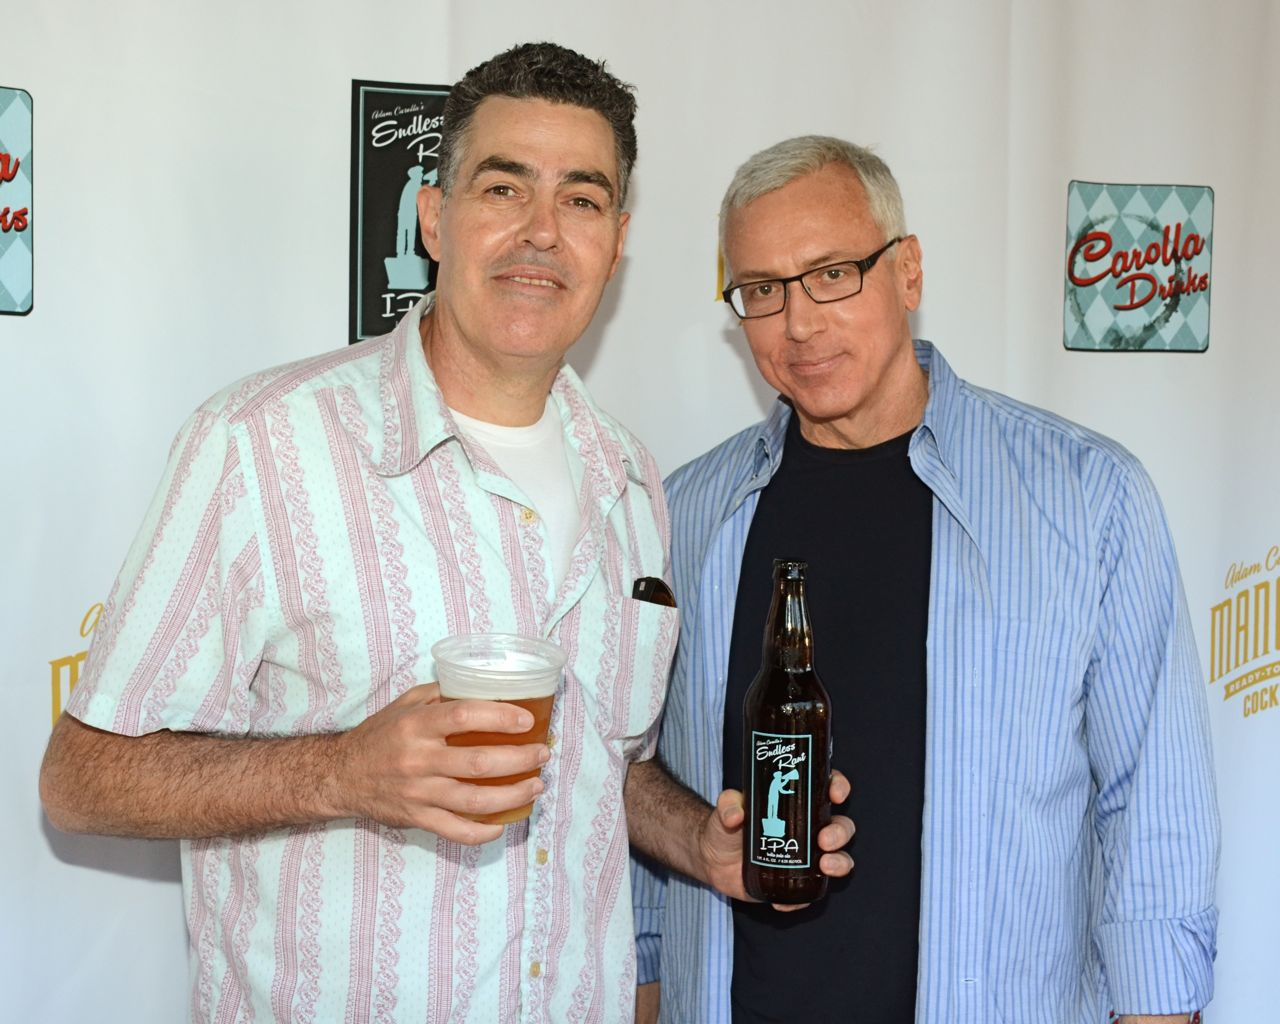 Adam Carolla's Launch Party For Endless Rant IPA: Hey Party People, it's Time To Drink Up!